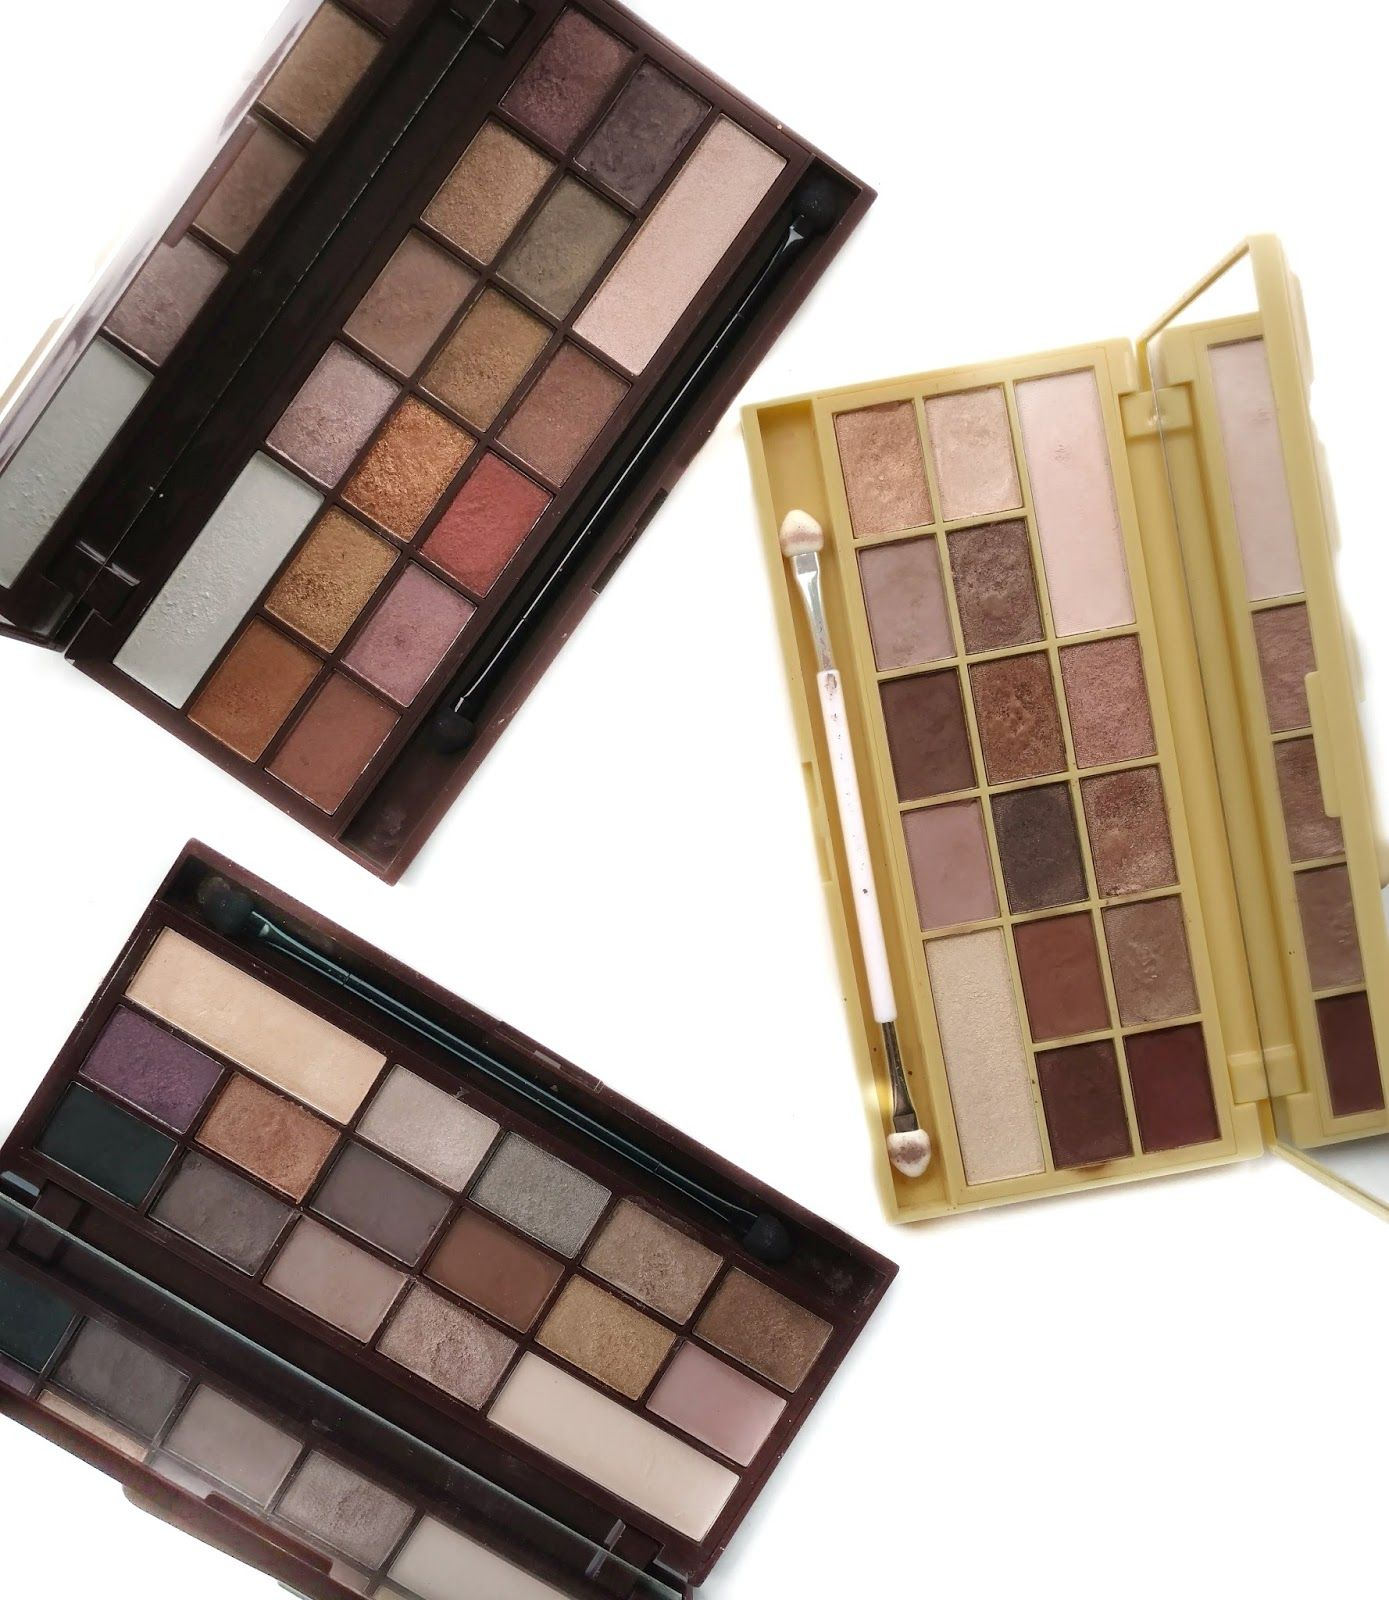 Makeup Revolution Chocolate Palettes Review & Swatches